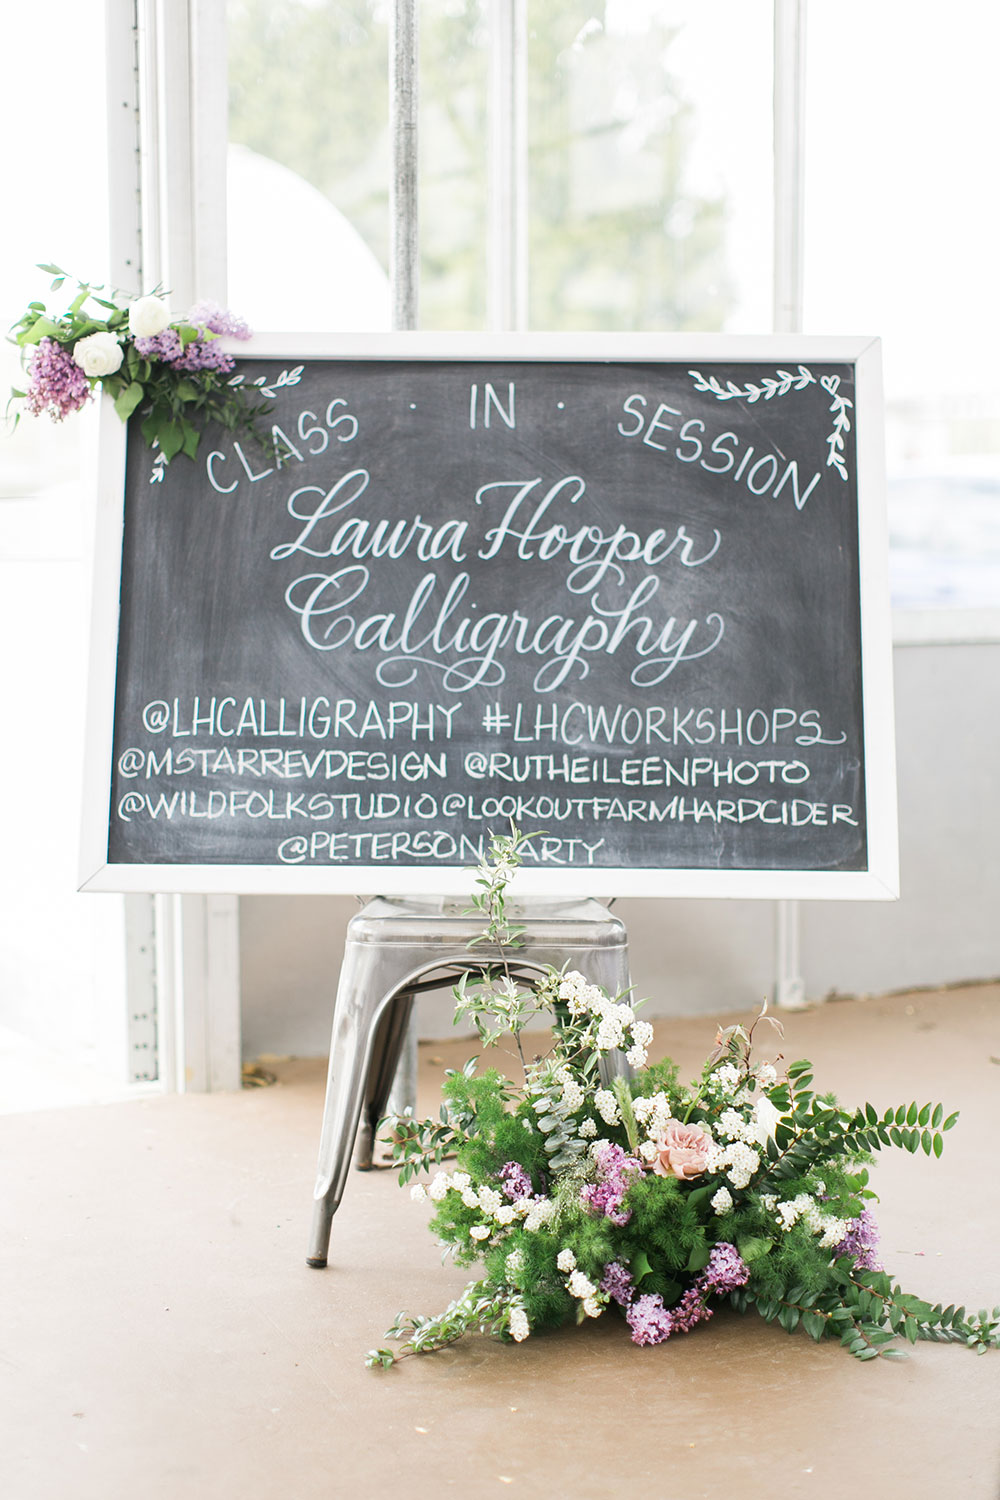 calligraphy workshop by Boston based designer mStarr design